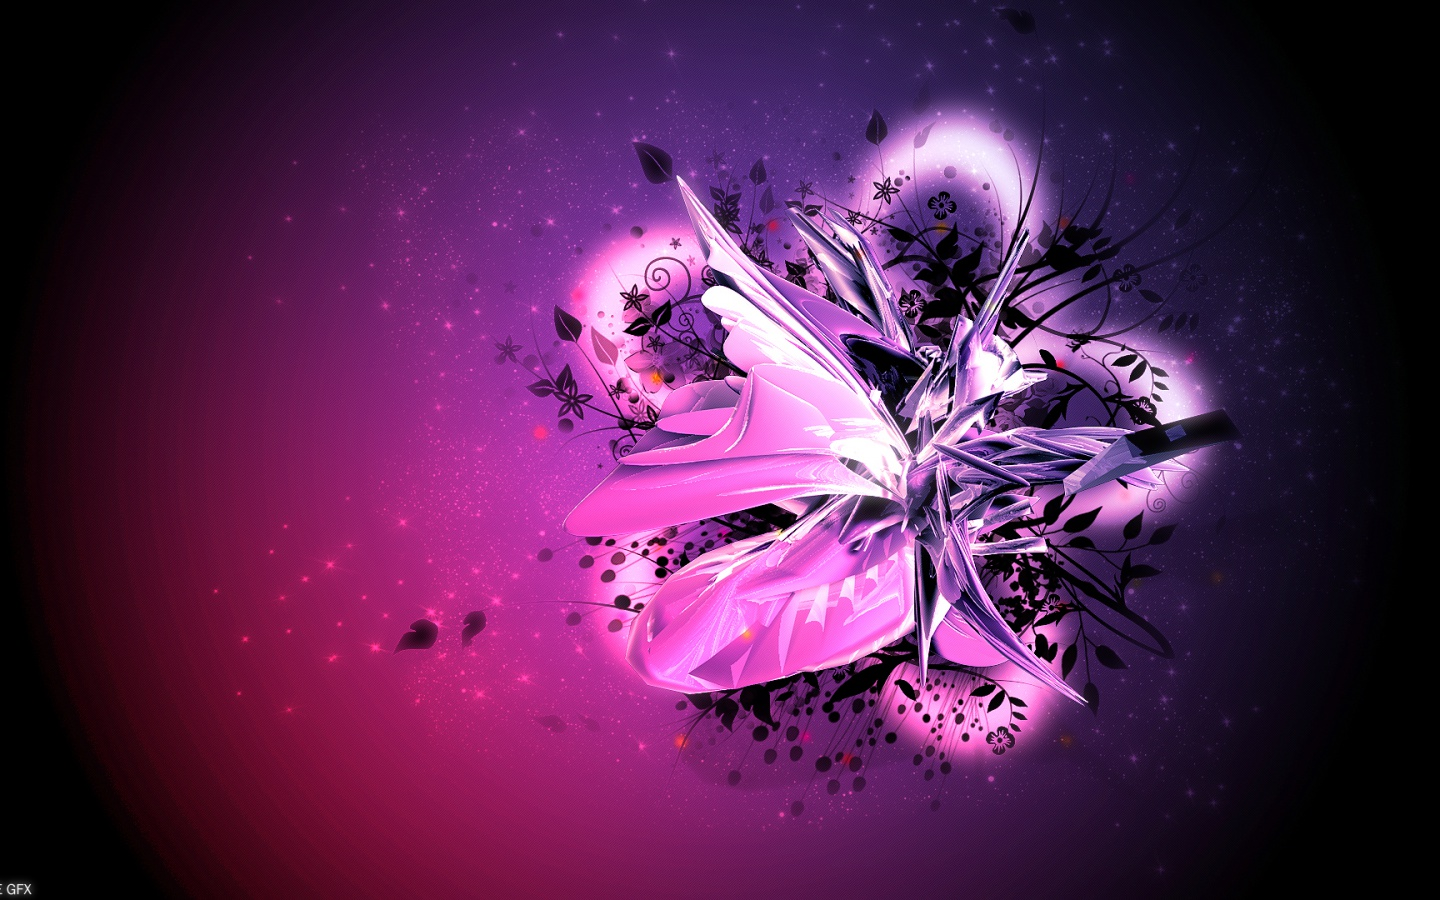 1440x900 Pink Purple Floral Abstract desktop PC and Mac wallpaper 1440x900